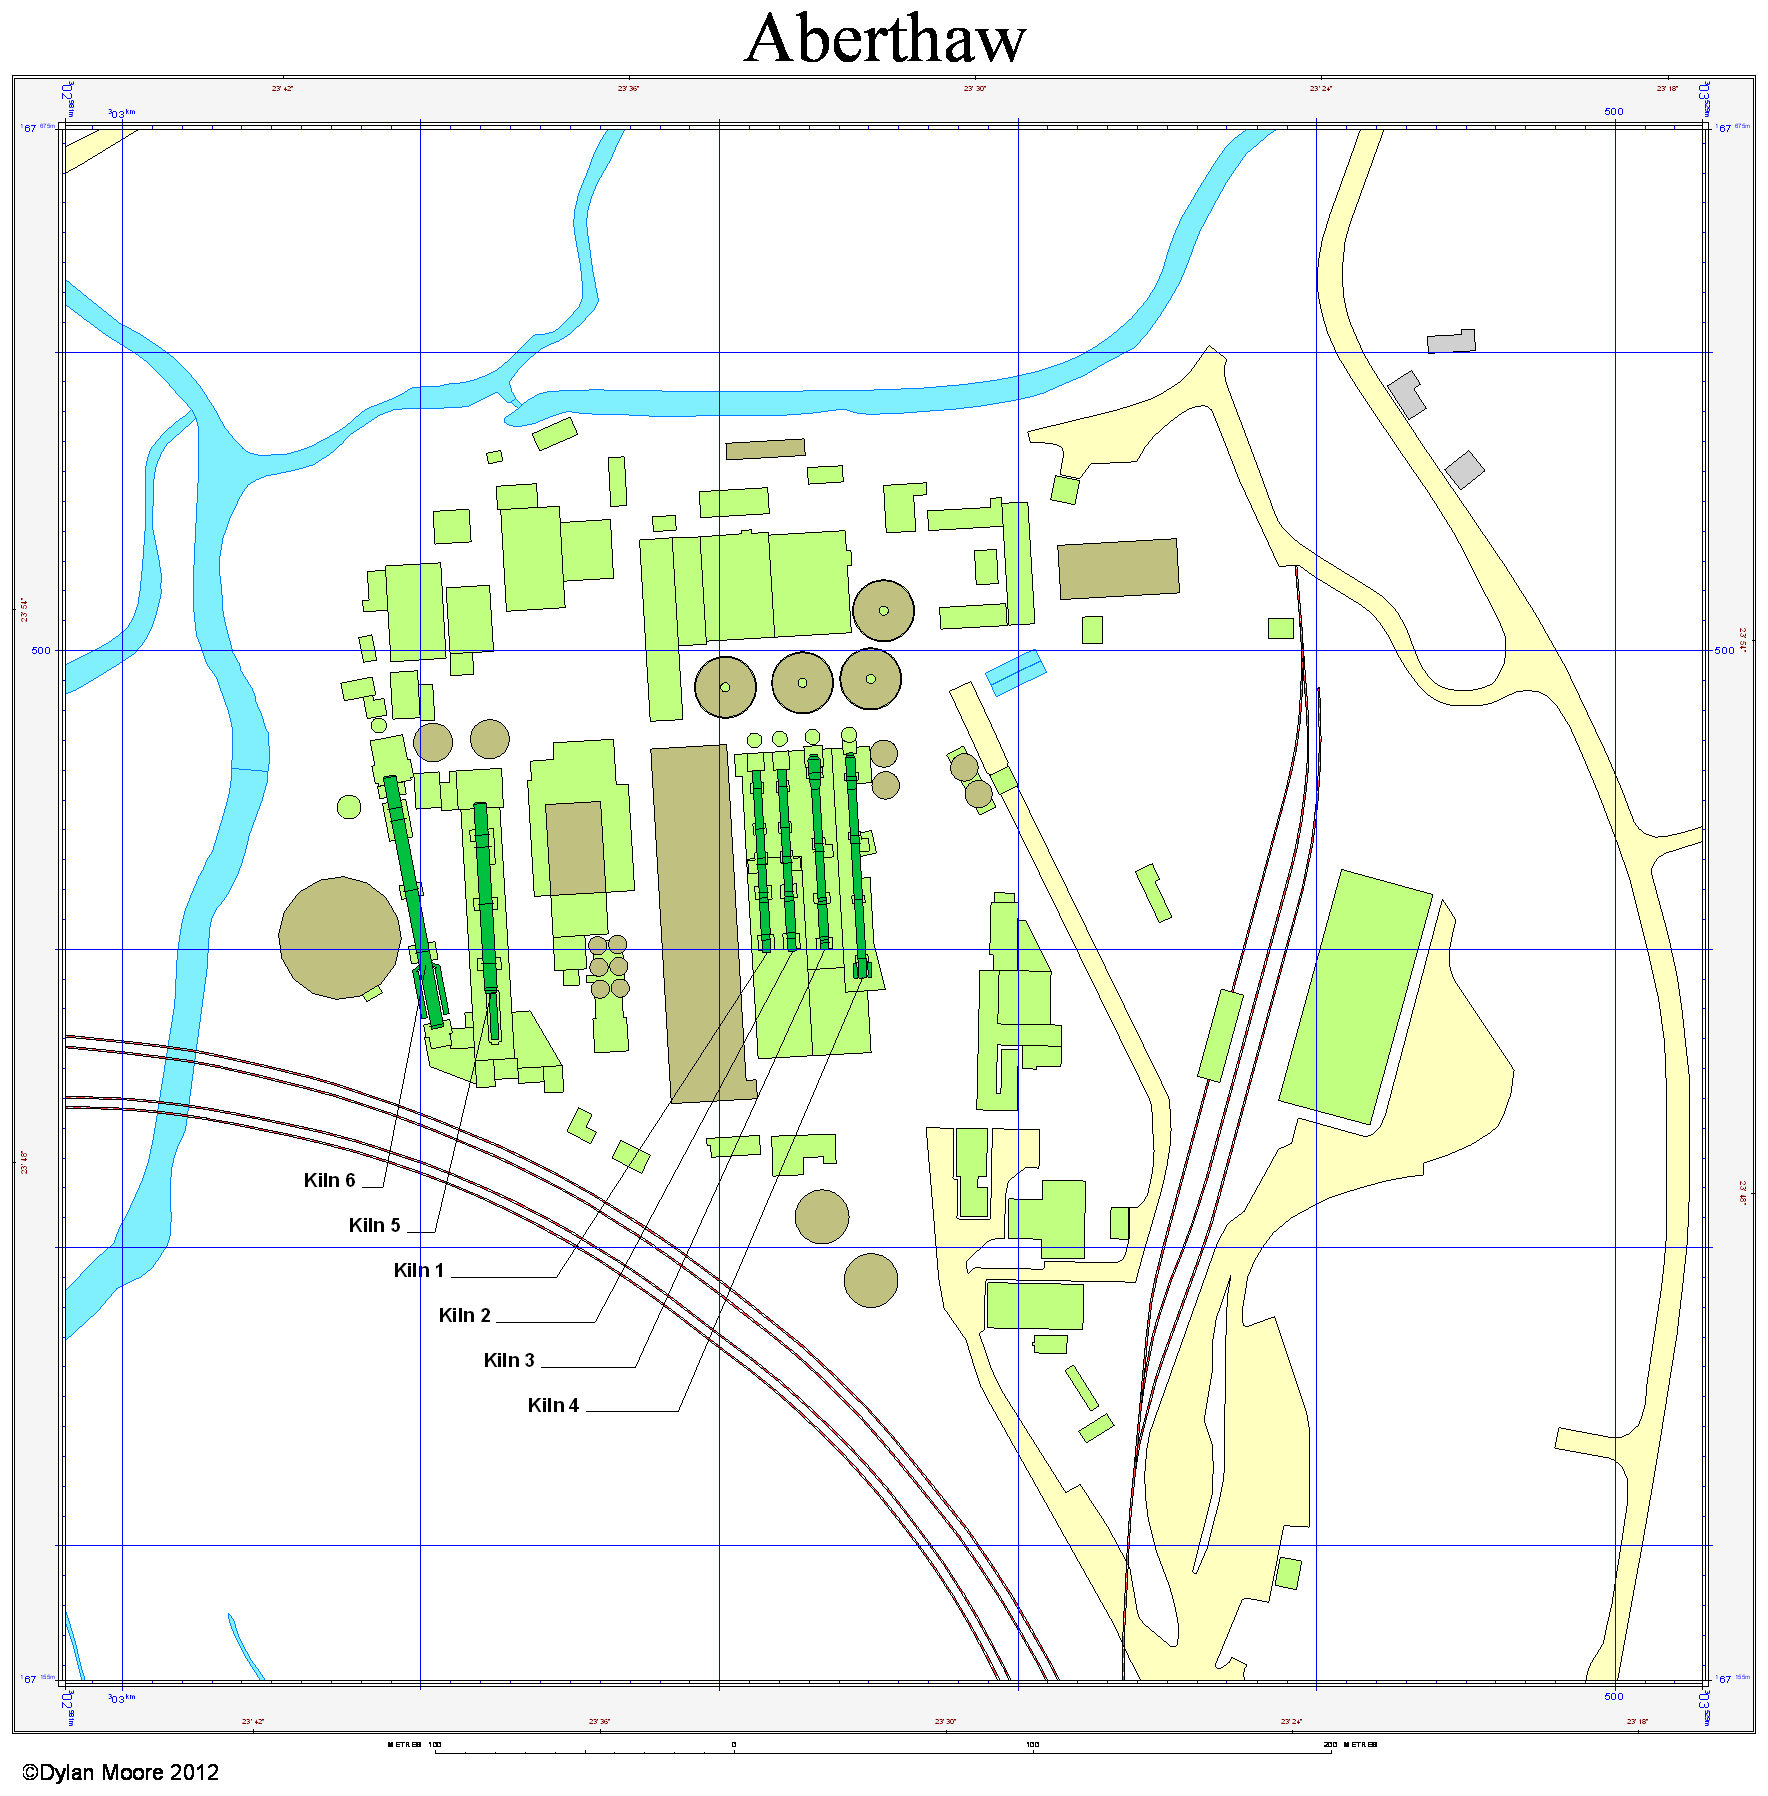 Aberthaw cement layout map